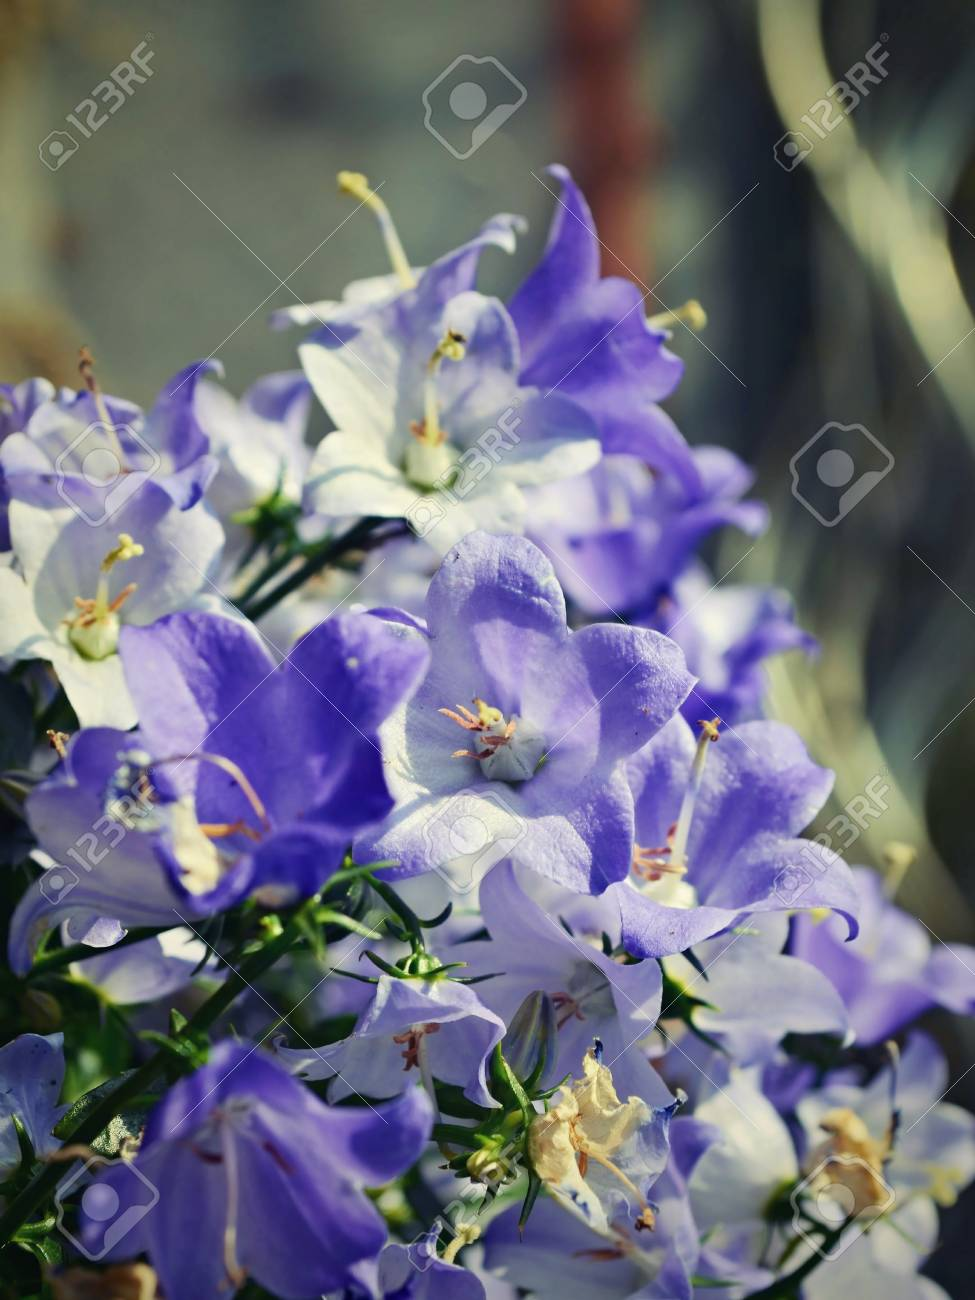 Floral Background Of Spring Flowers Stock Photo Picture And Royalty